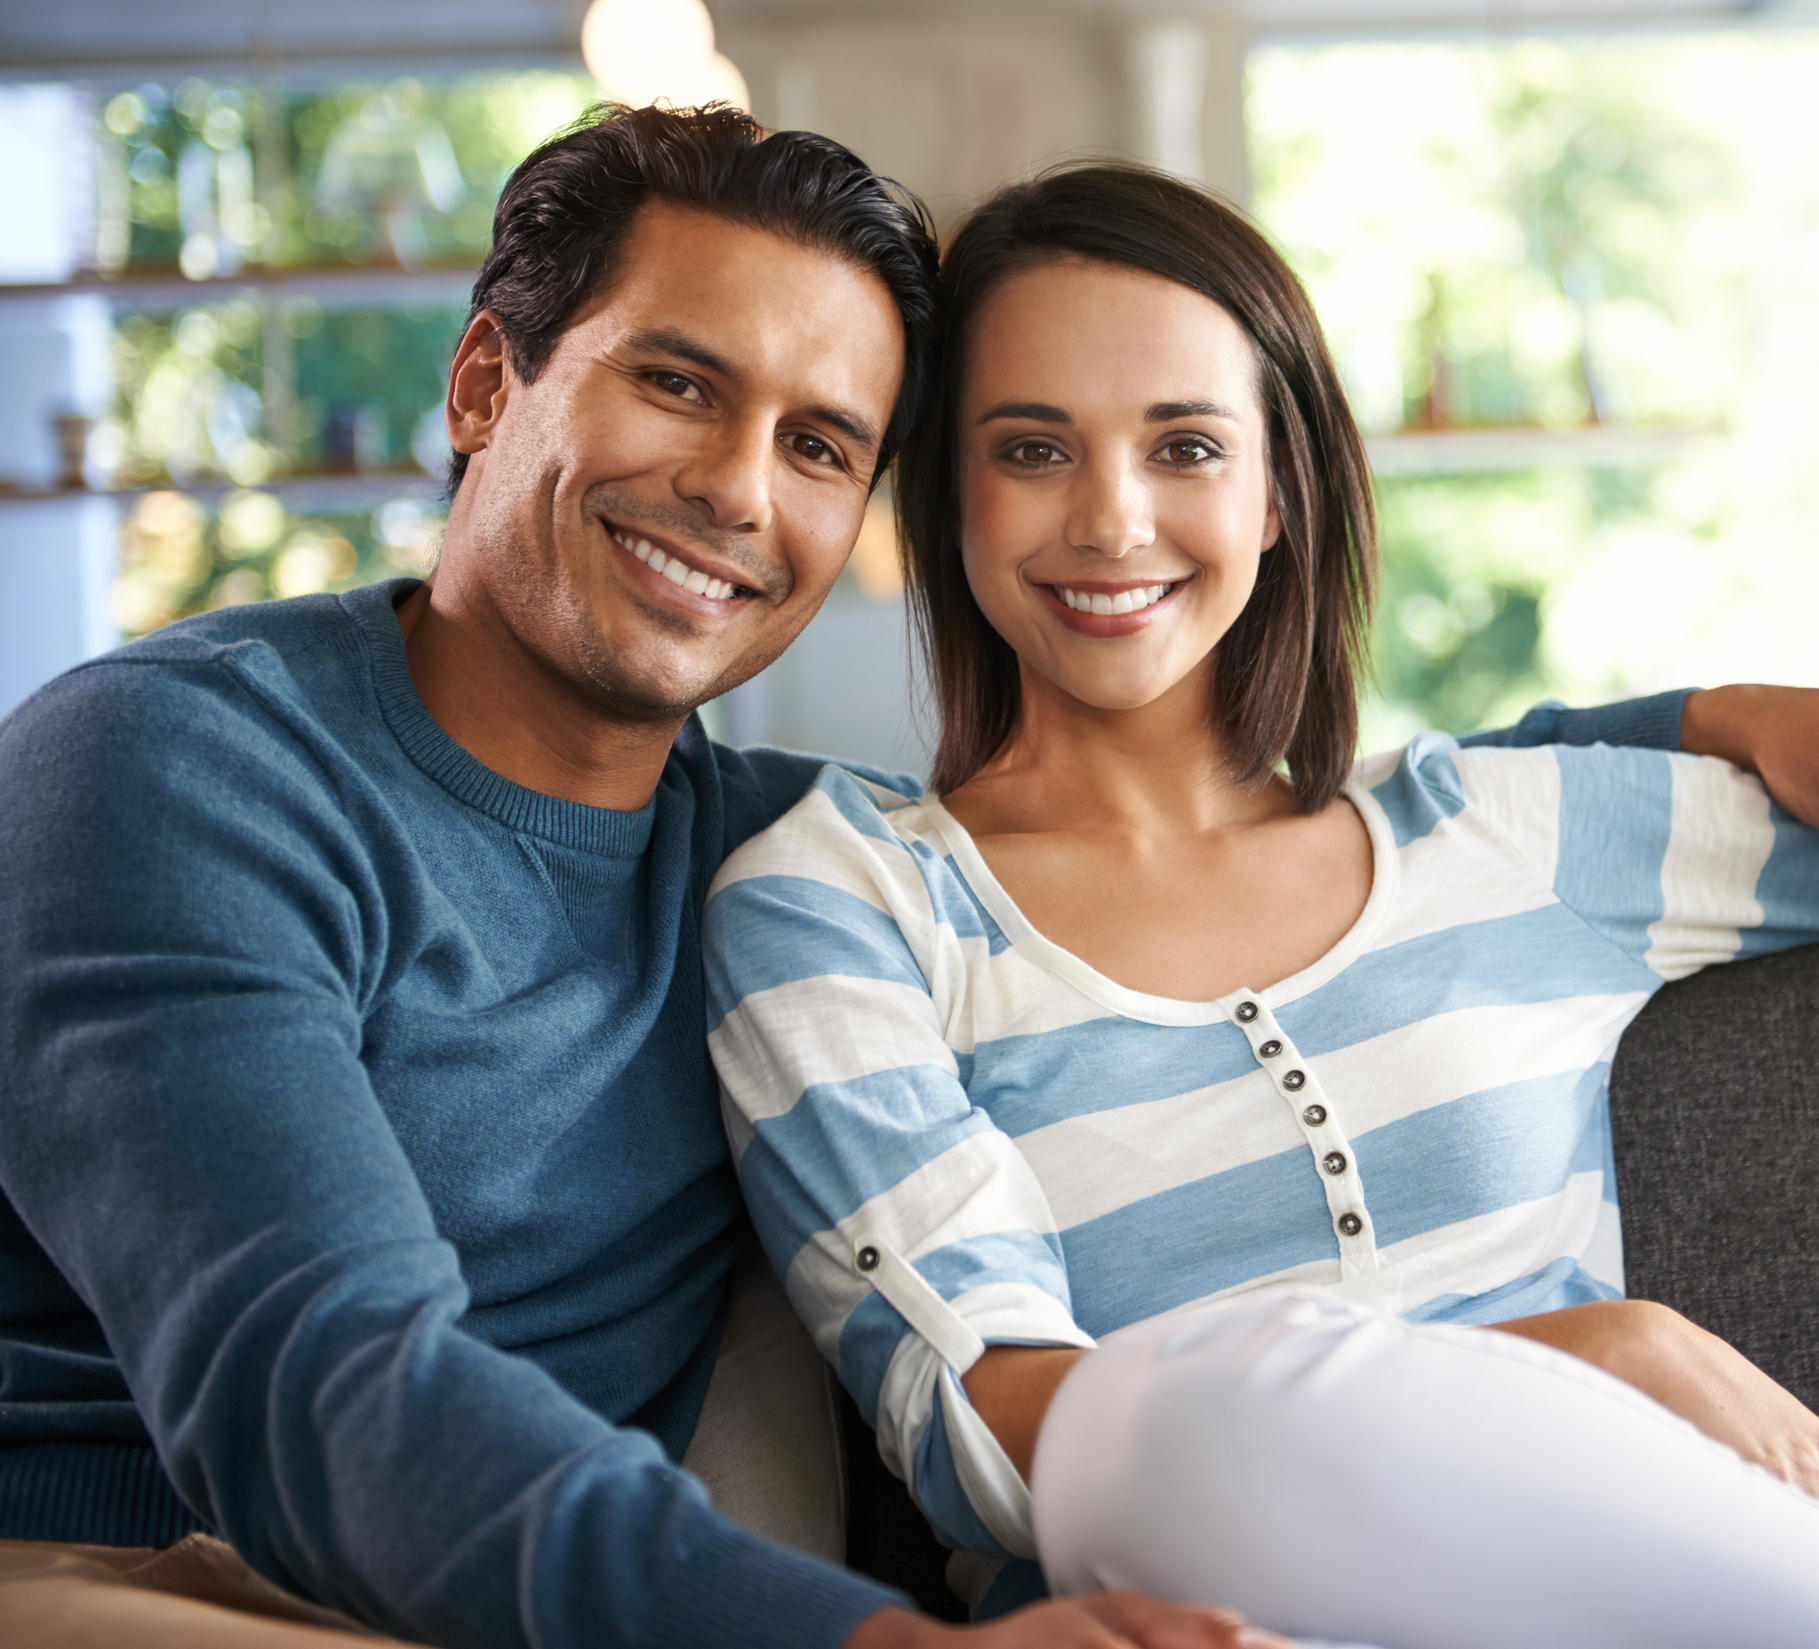 Napa Valley Couples Therapy - Let us help you cultivate a loving, equitable and lasting partnership, more enriched sex life and a secure, intimate relationship.